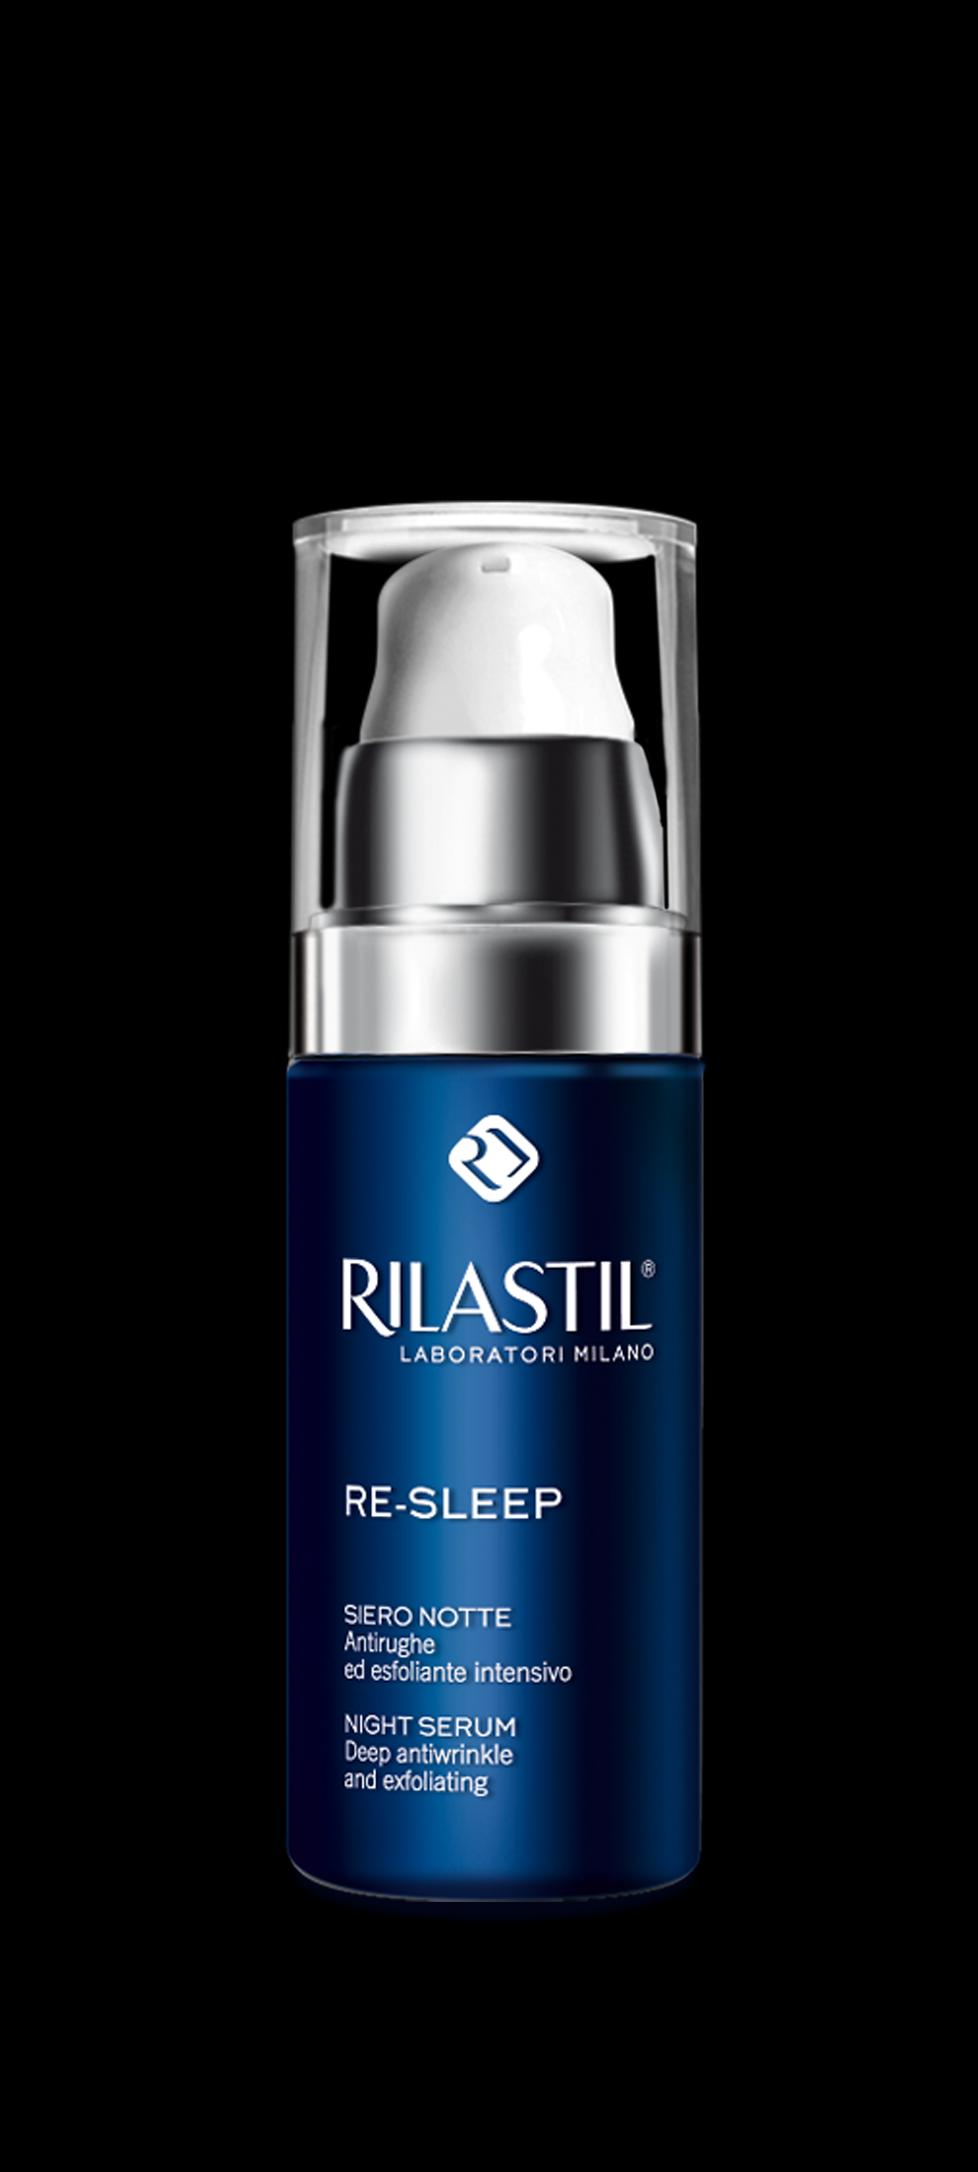 RILASTIL RE-SLEEP SIERO NOTTE ANTIRUGHE ED EMOLLIENTE INTENSIVO 30 ML